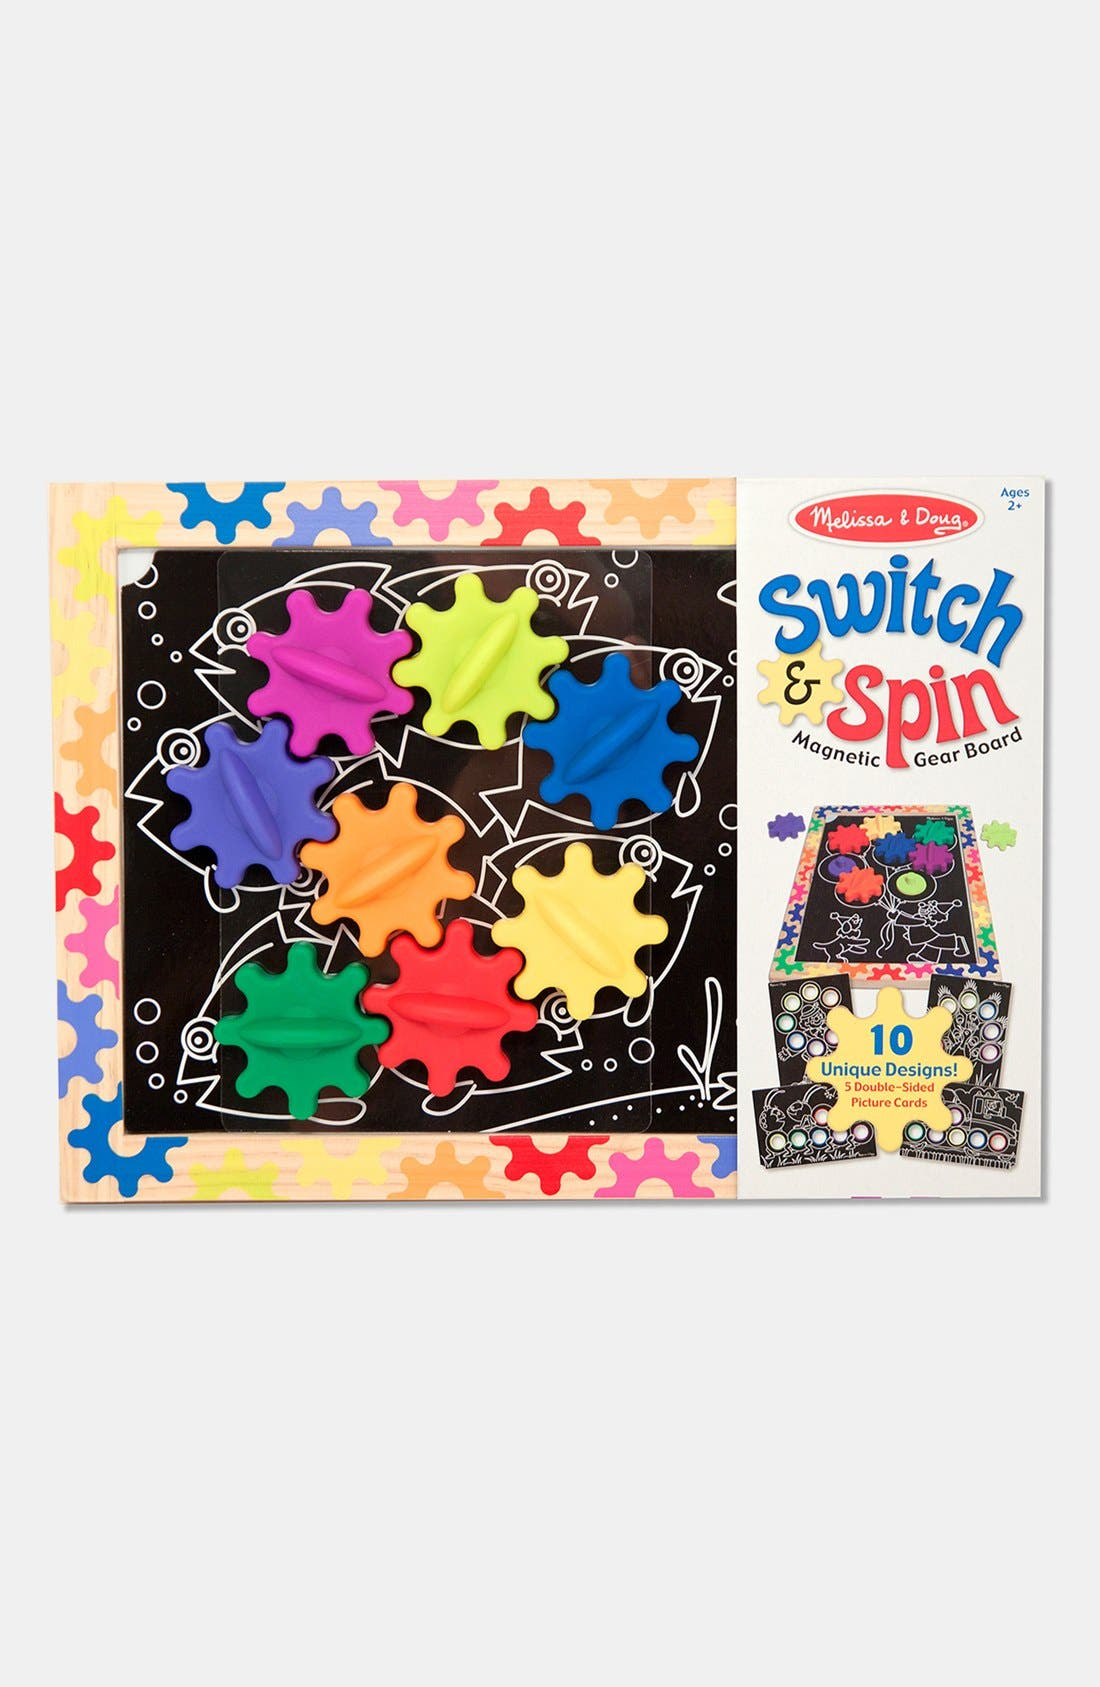 Alternate Image 1 Selected - Melissa & Doug 'Switch & Spin' Magnetic Gear Board